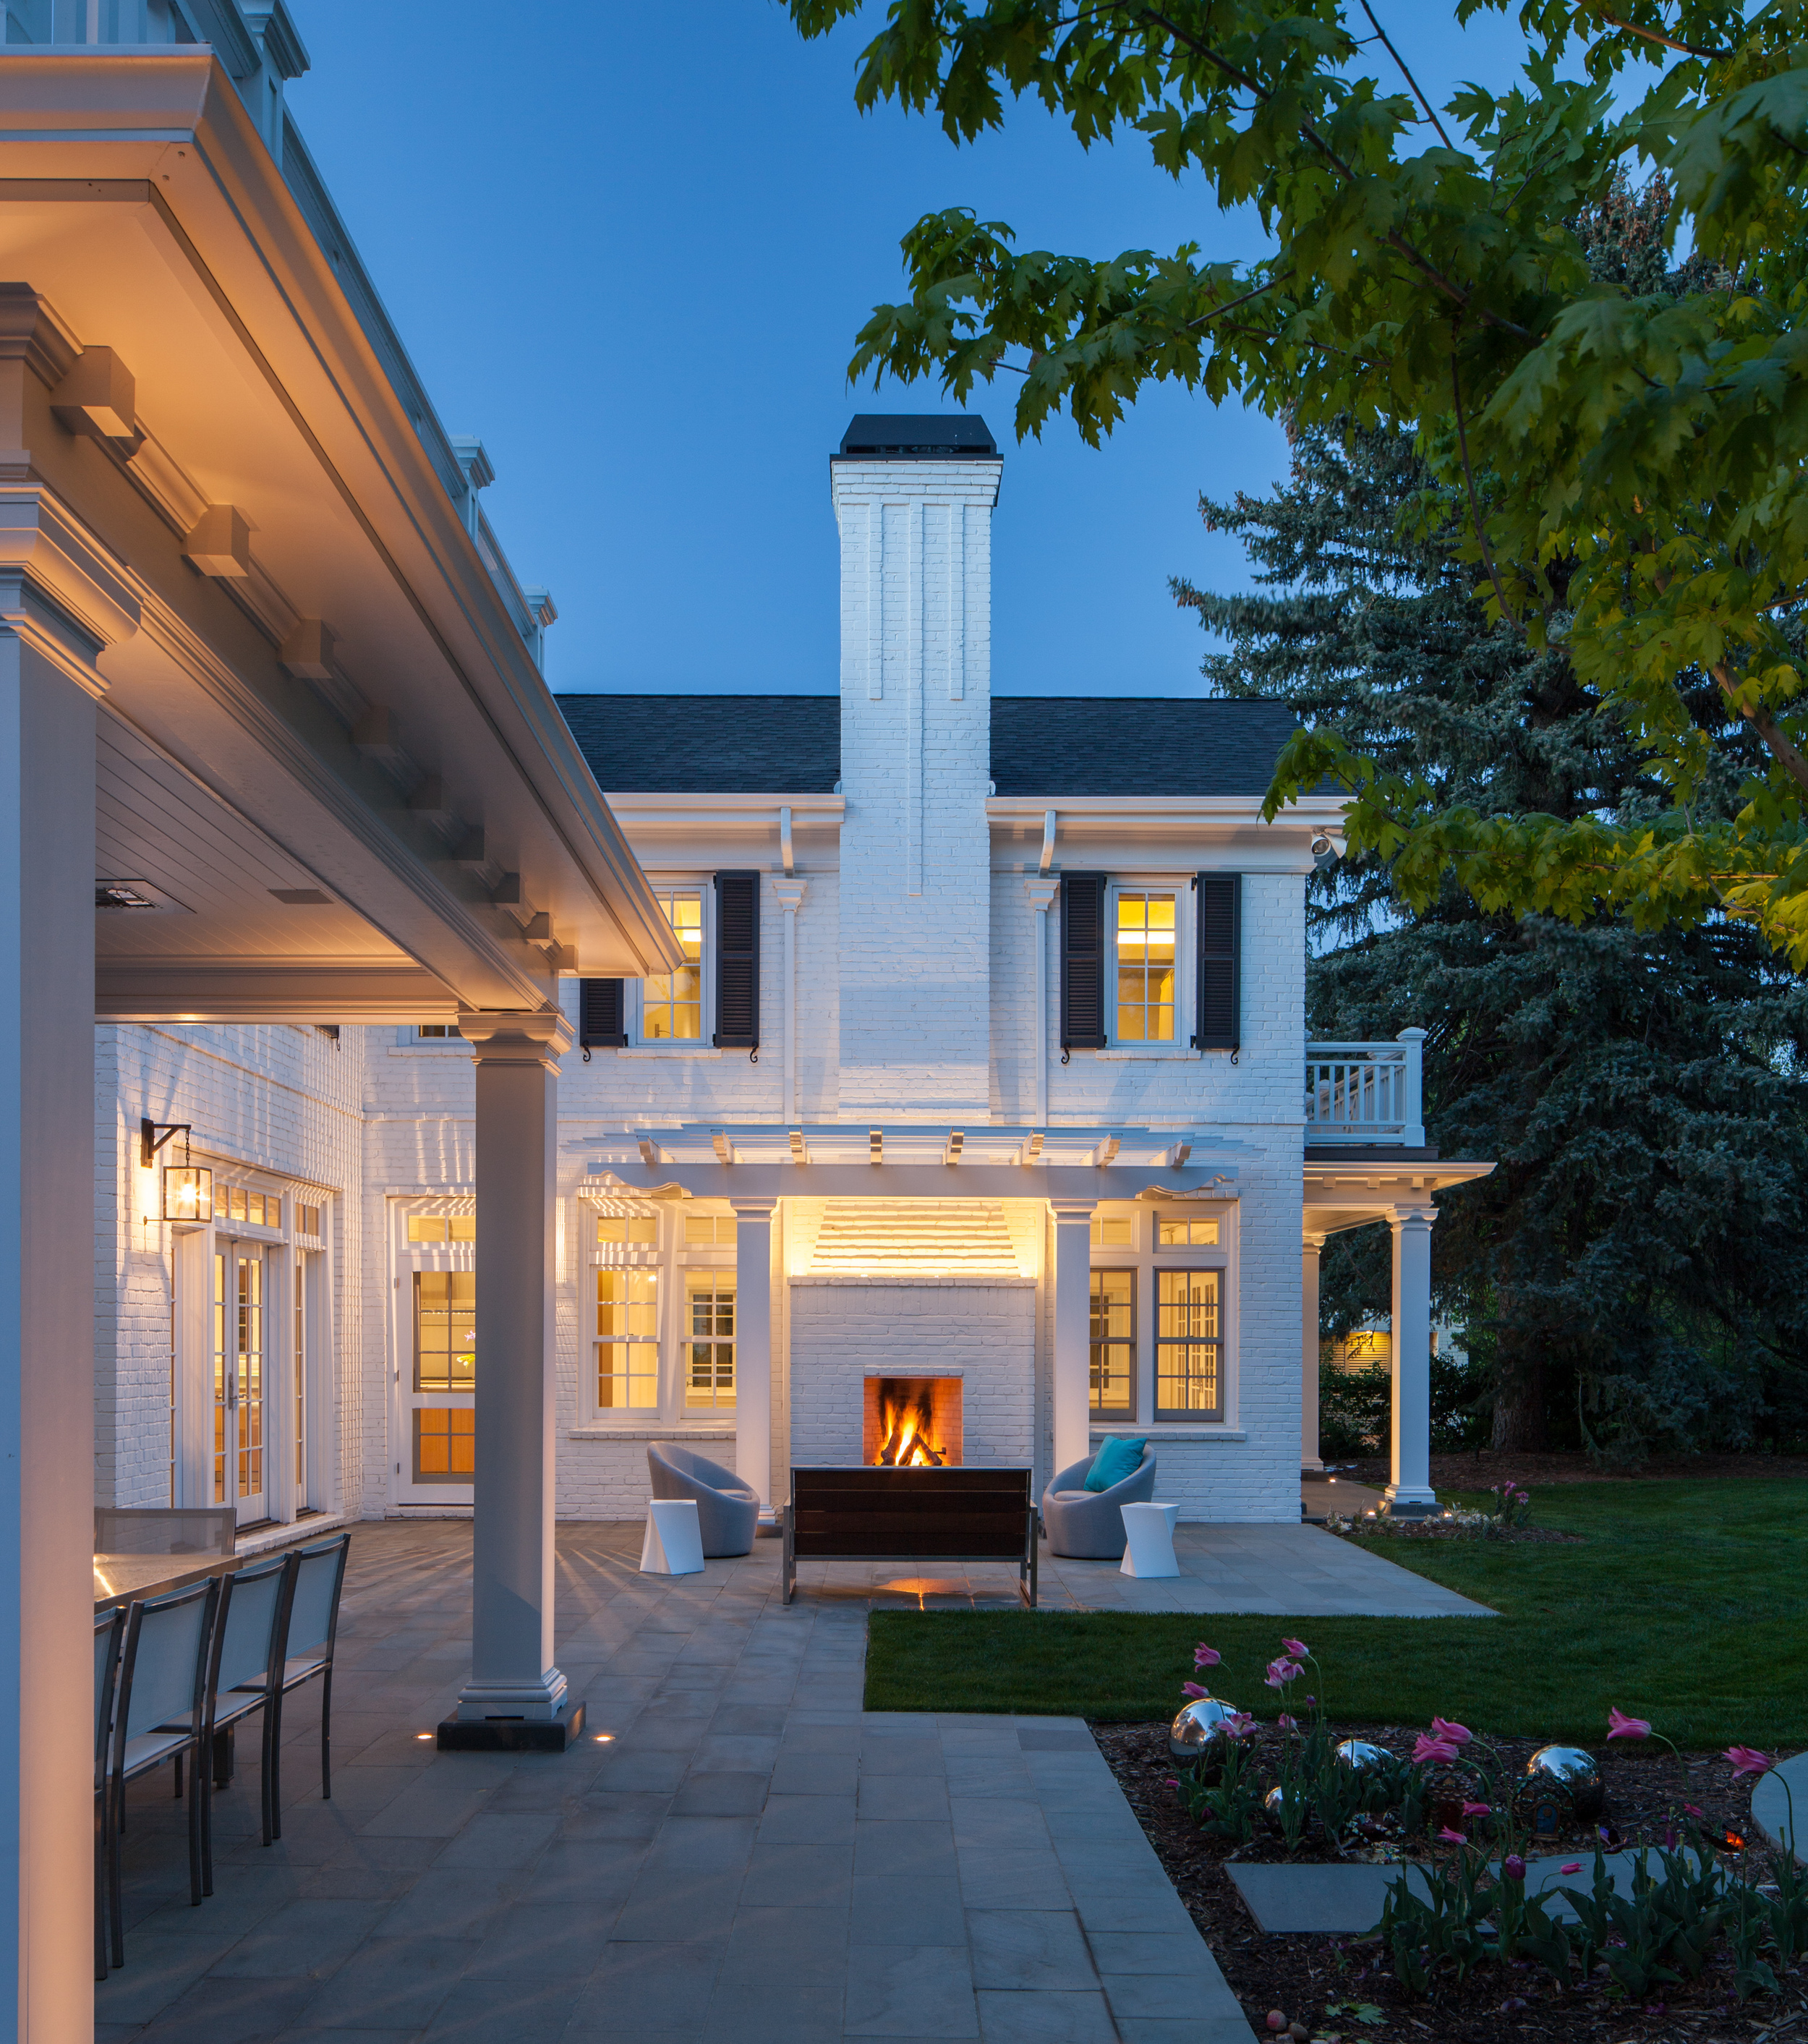 colonial_home_denver_night_side_view.jpg